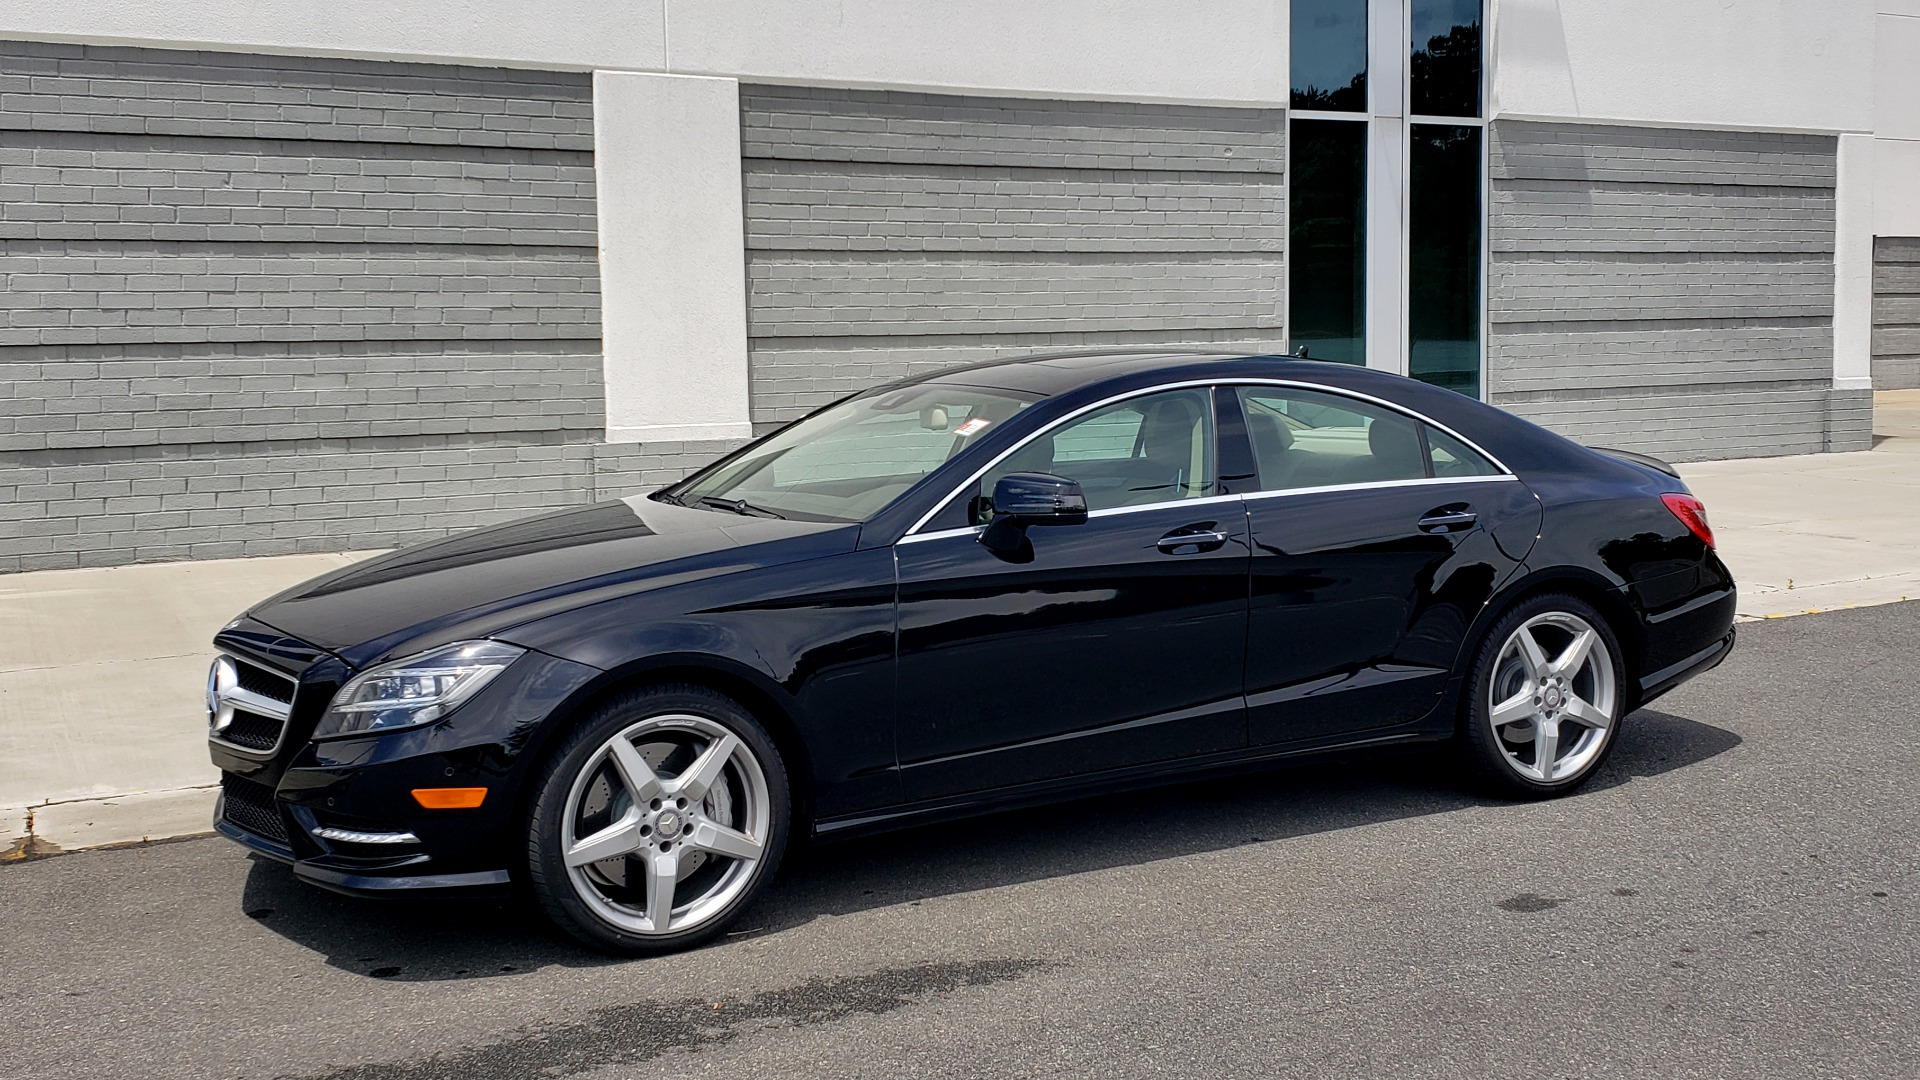 Used 2014 Mercedes-Benz CLS-CLASS CLS 550 PREMIUM / AMG SPORT WHLS / SUNROOF / LANE TRACK / PARKTRONIC for sale Sold at Formula Imports in Charlotte NC 28227 4